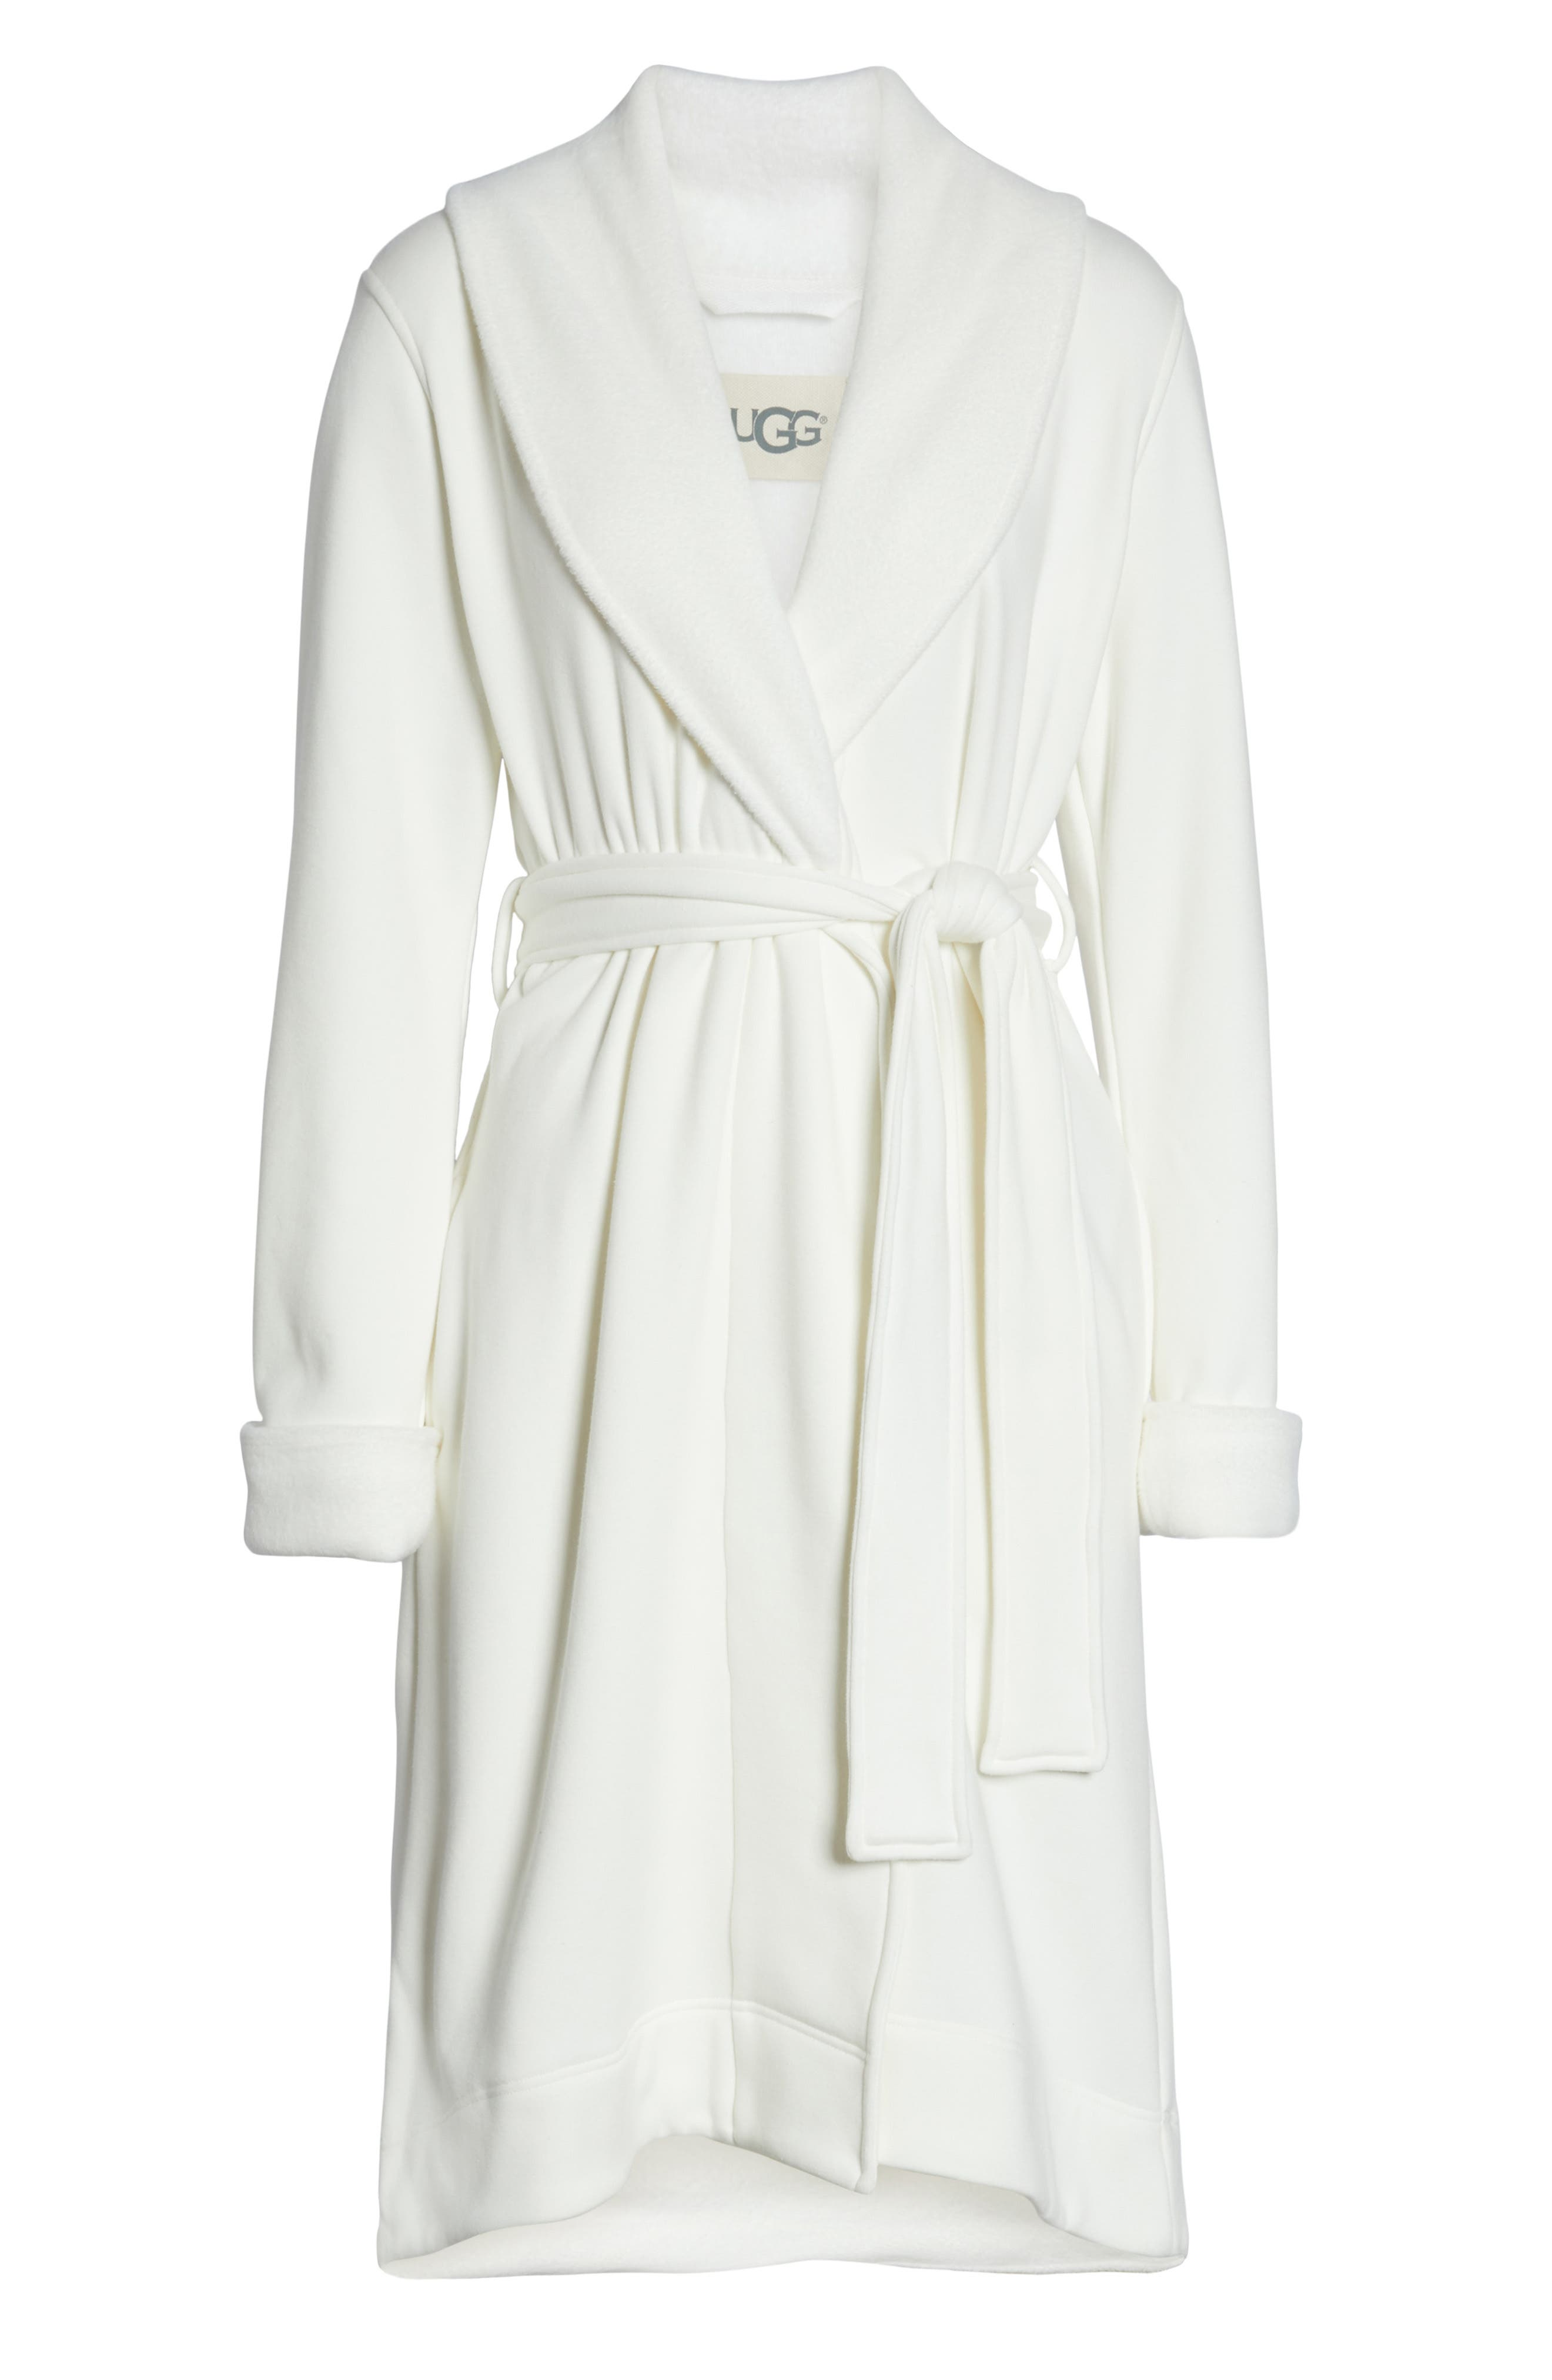 UGG<SUP>®</SUP>, Duffield II Robe, Alternate thumbnail 6, color, CHARCOAL